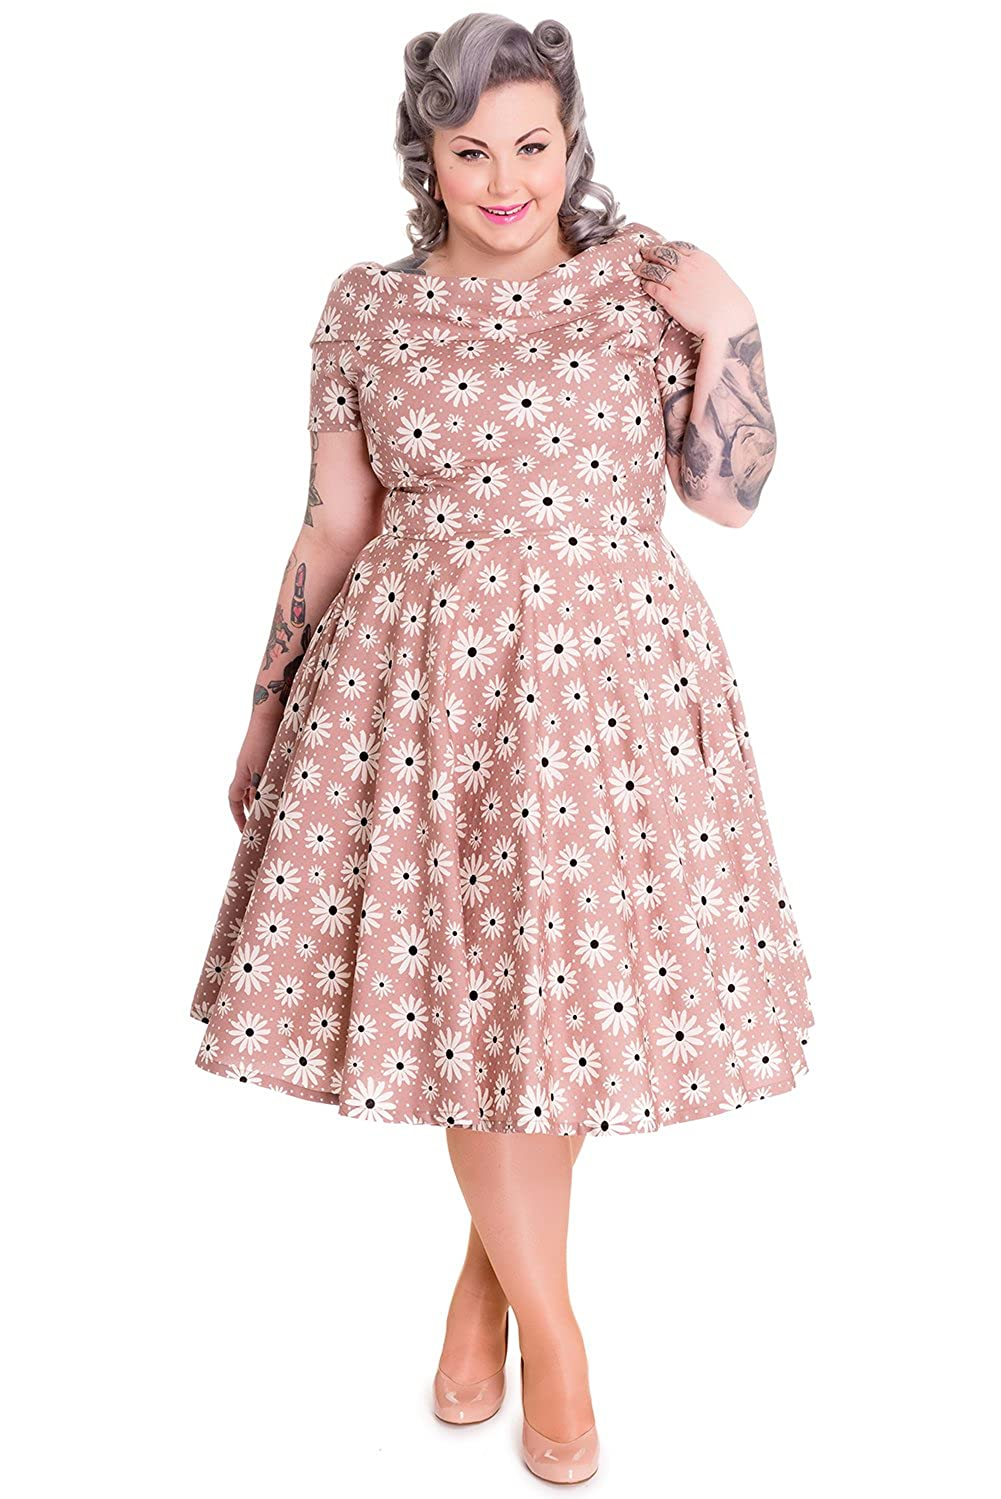 60s 70s Plus Size Dresses, Clothing, Costumes Hell Bunny Plus 50s Lovely Lady Daisy Floral Polka Dot Party Dress Latte Brown $78.00 AT vintagedancer.com